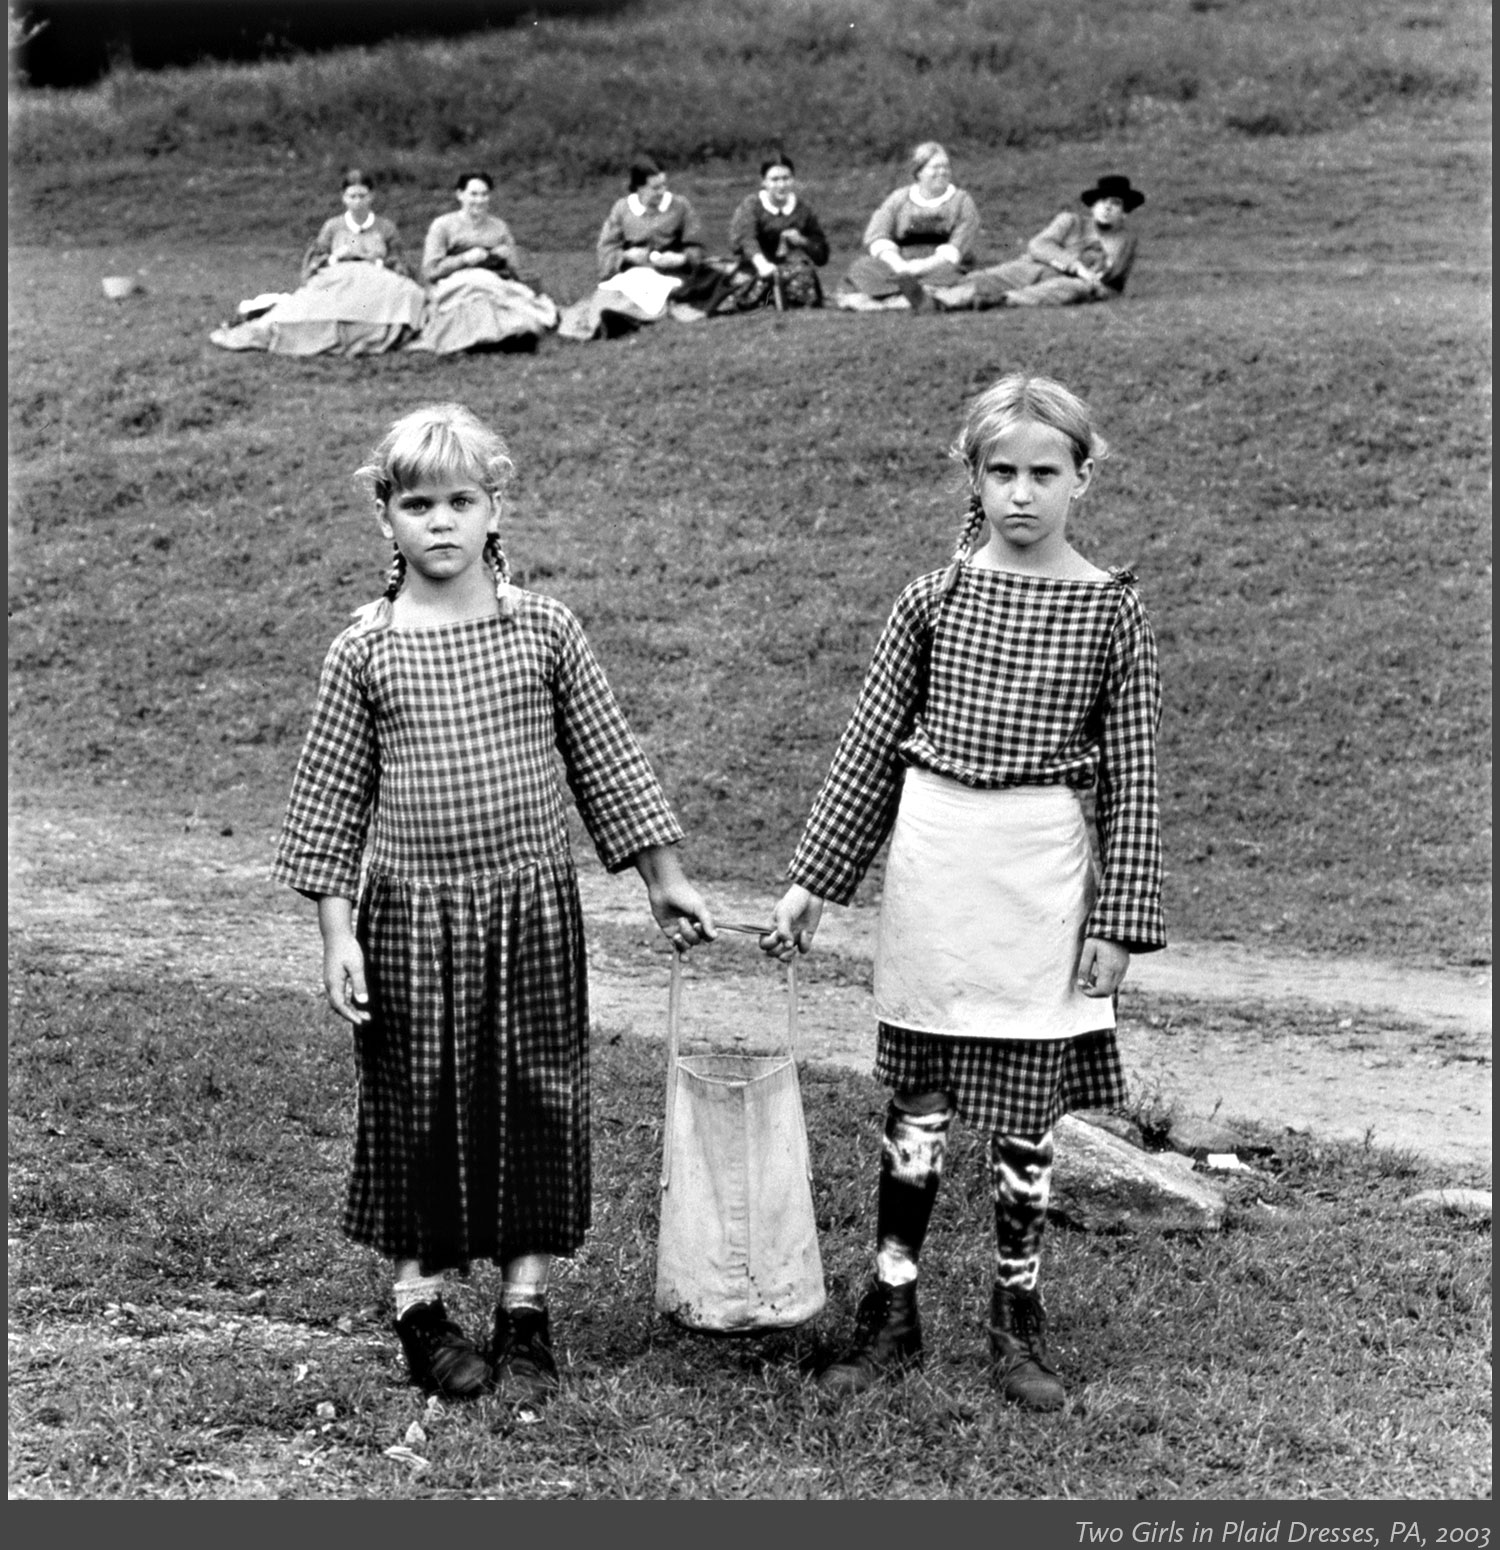 13_Two-Girls-With-Plaid-Dresses,-PA,-2003_RT.jpg